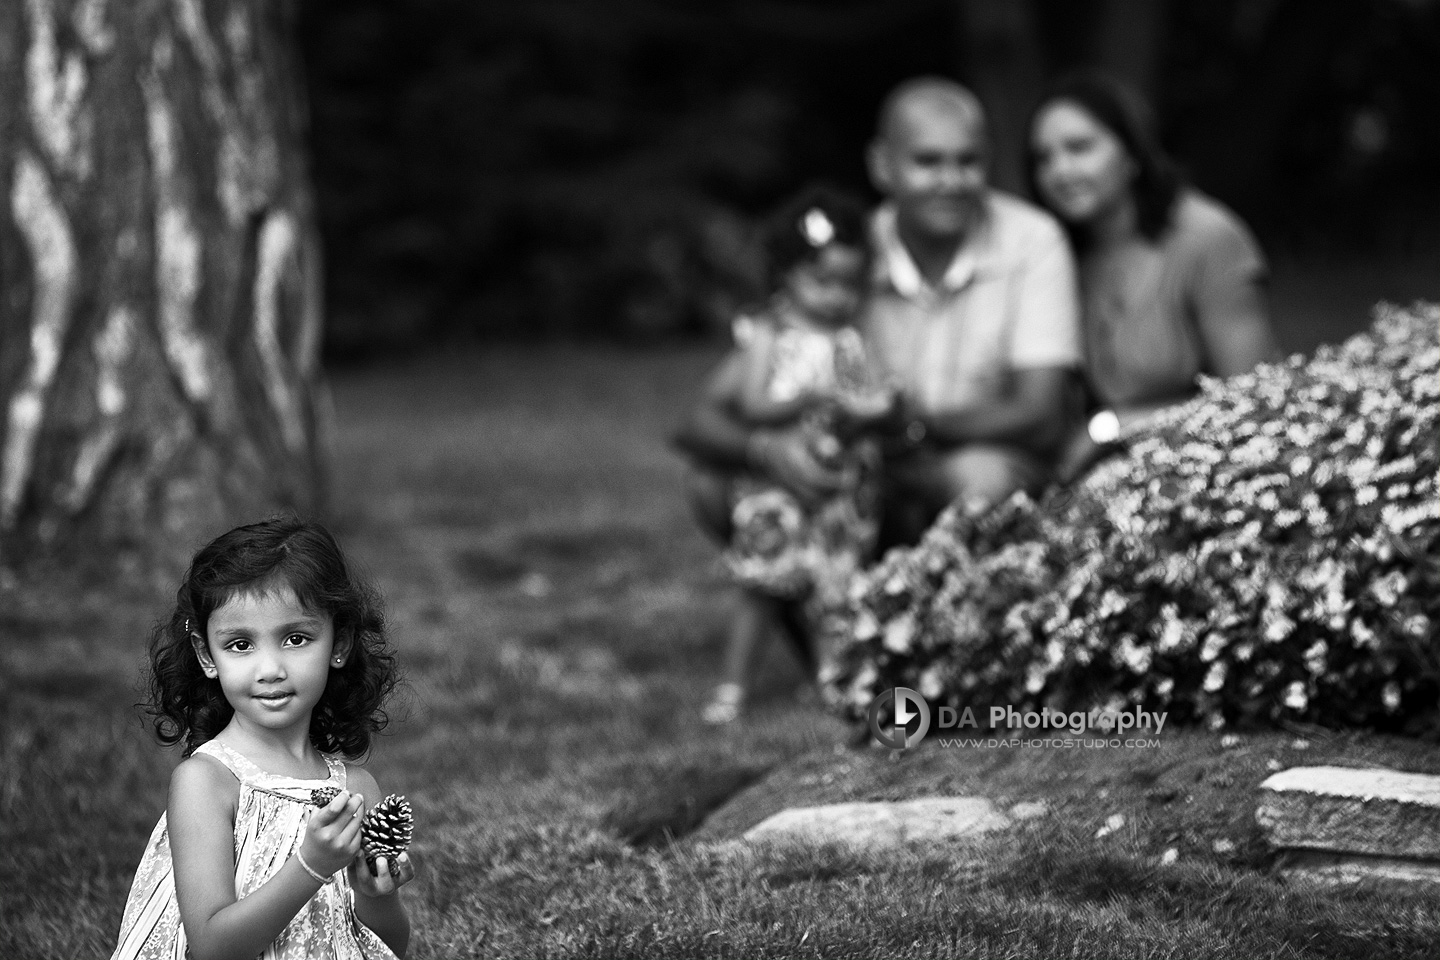 All grown up and independent - Family Photography by DA Photography